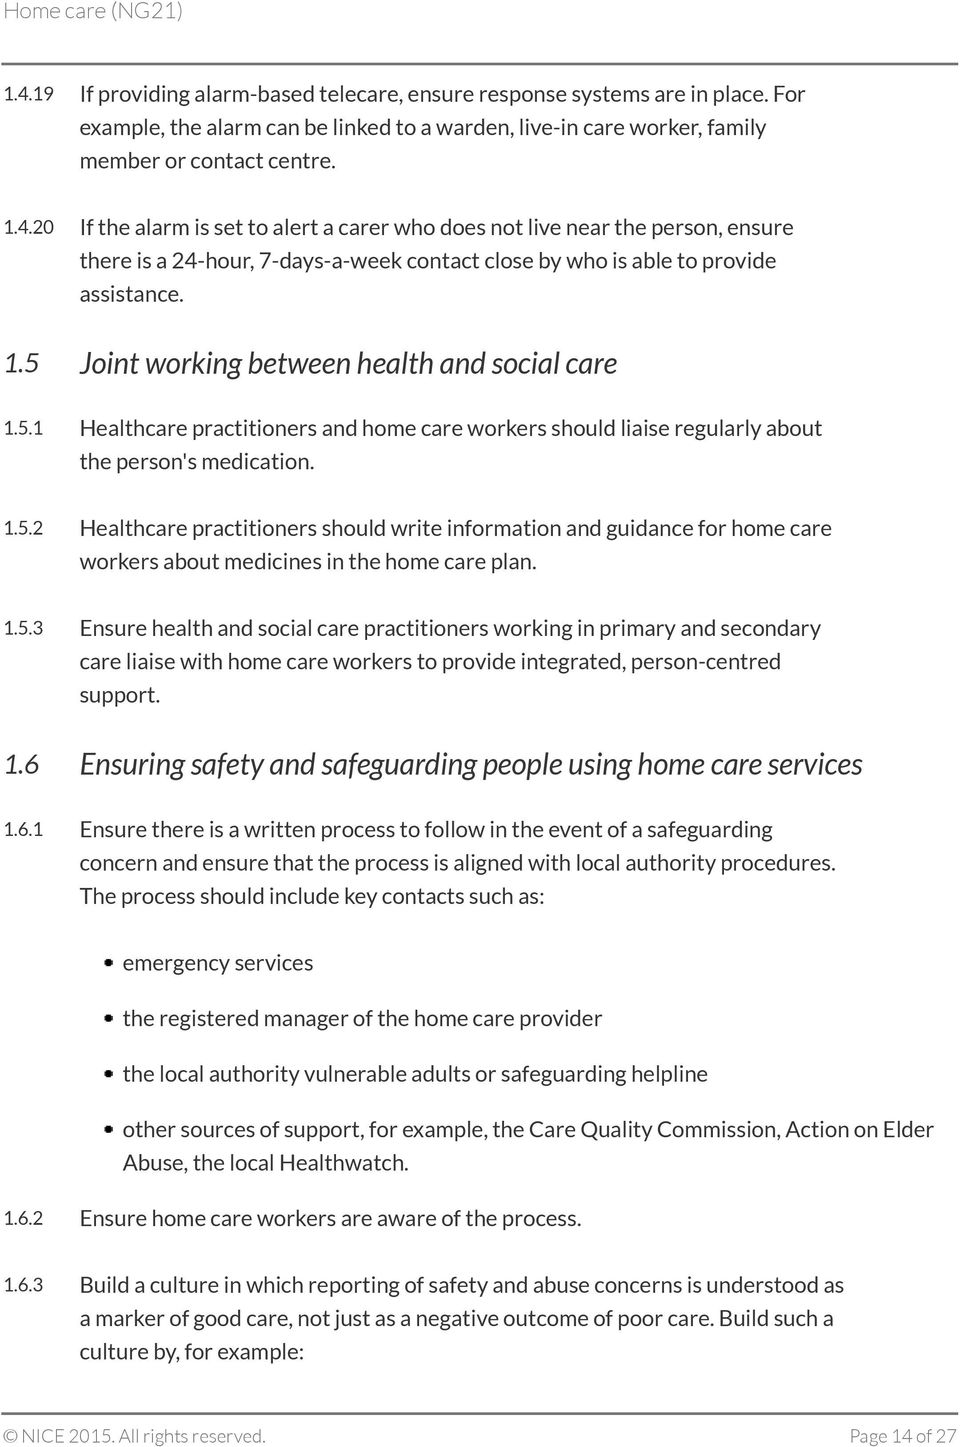 1.5.3 Ensure health and social care practitioners working in primary and secondary care liaise with home care workers to provide integrated, person-centred support. 1.